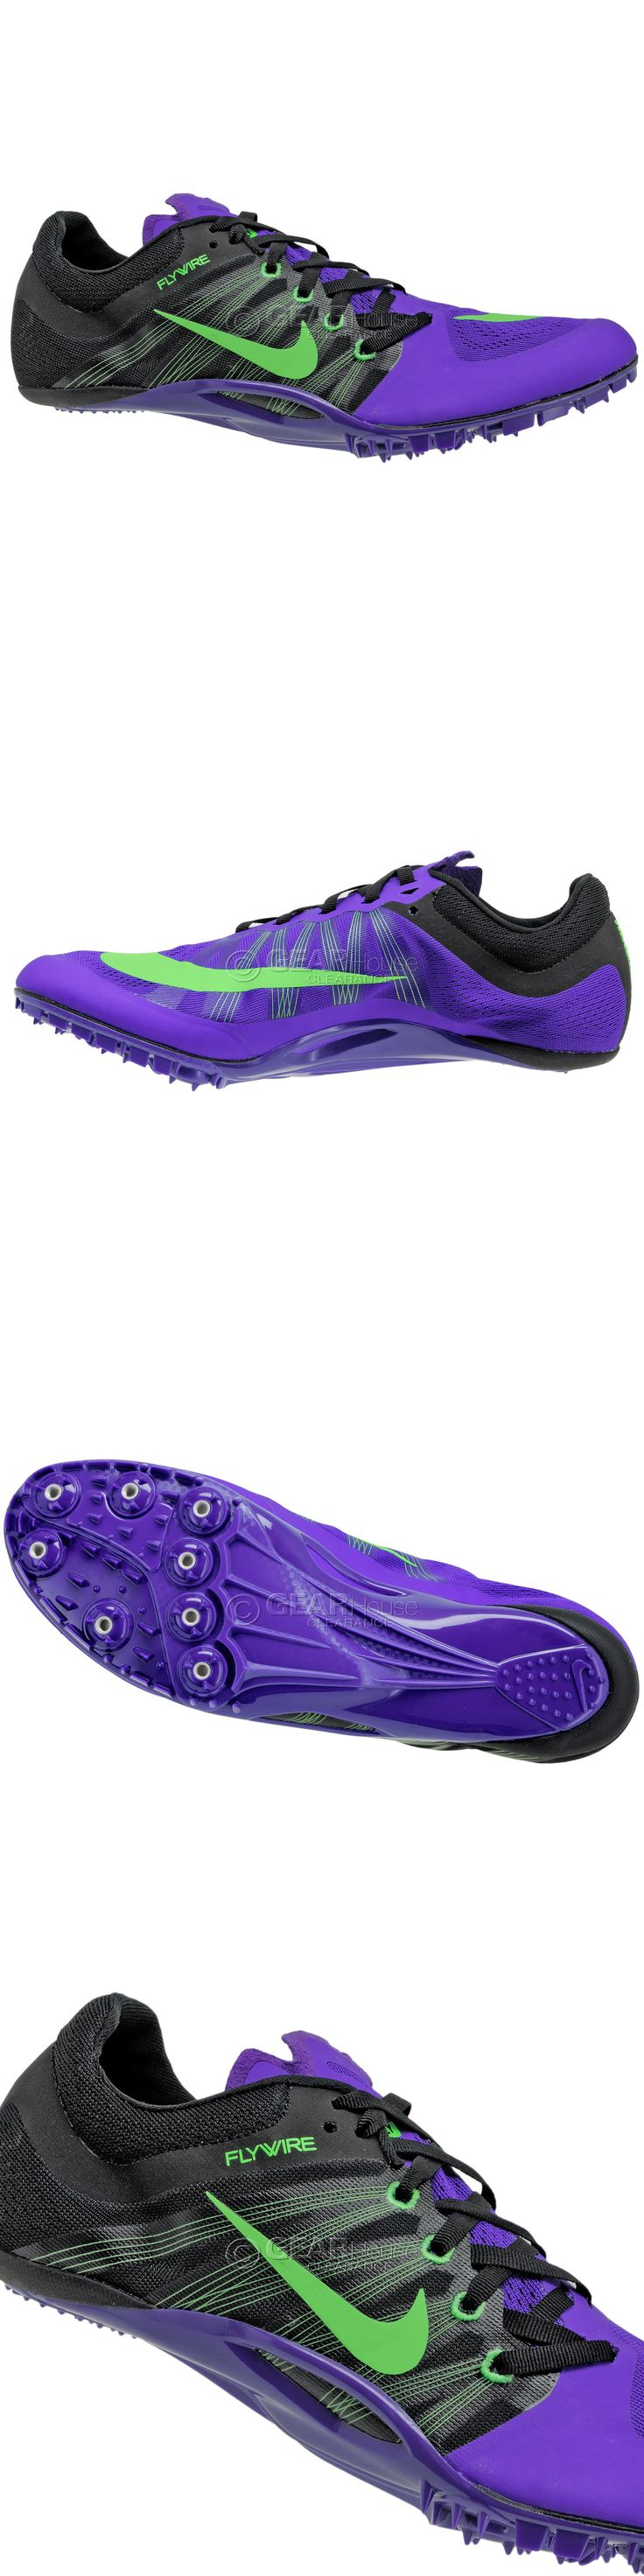 Track and Field 106981: New Nike Zoom Ja Fly 2 Mens Track And Field Spikes Sprint Shoes Black Purple, 8.5 BUY IT NOW ONLY: $46.9